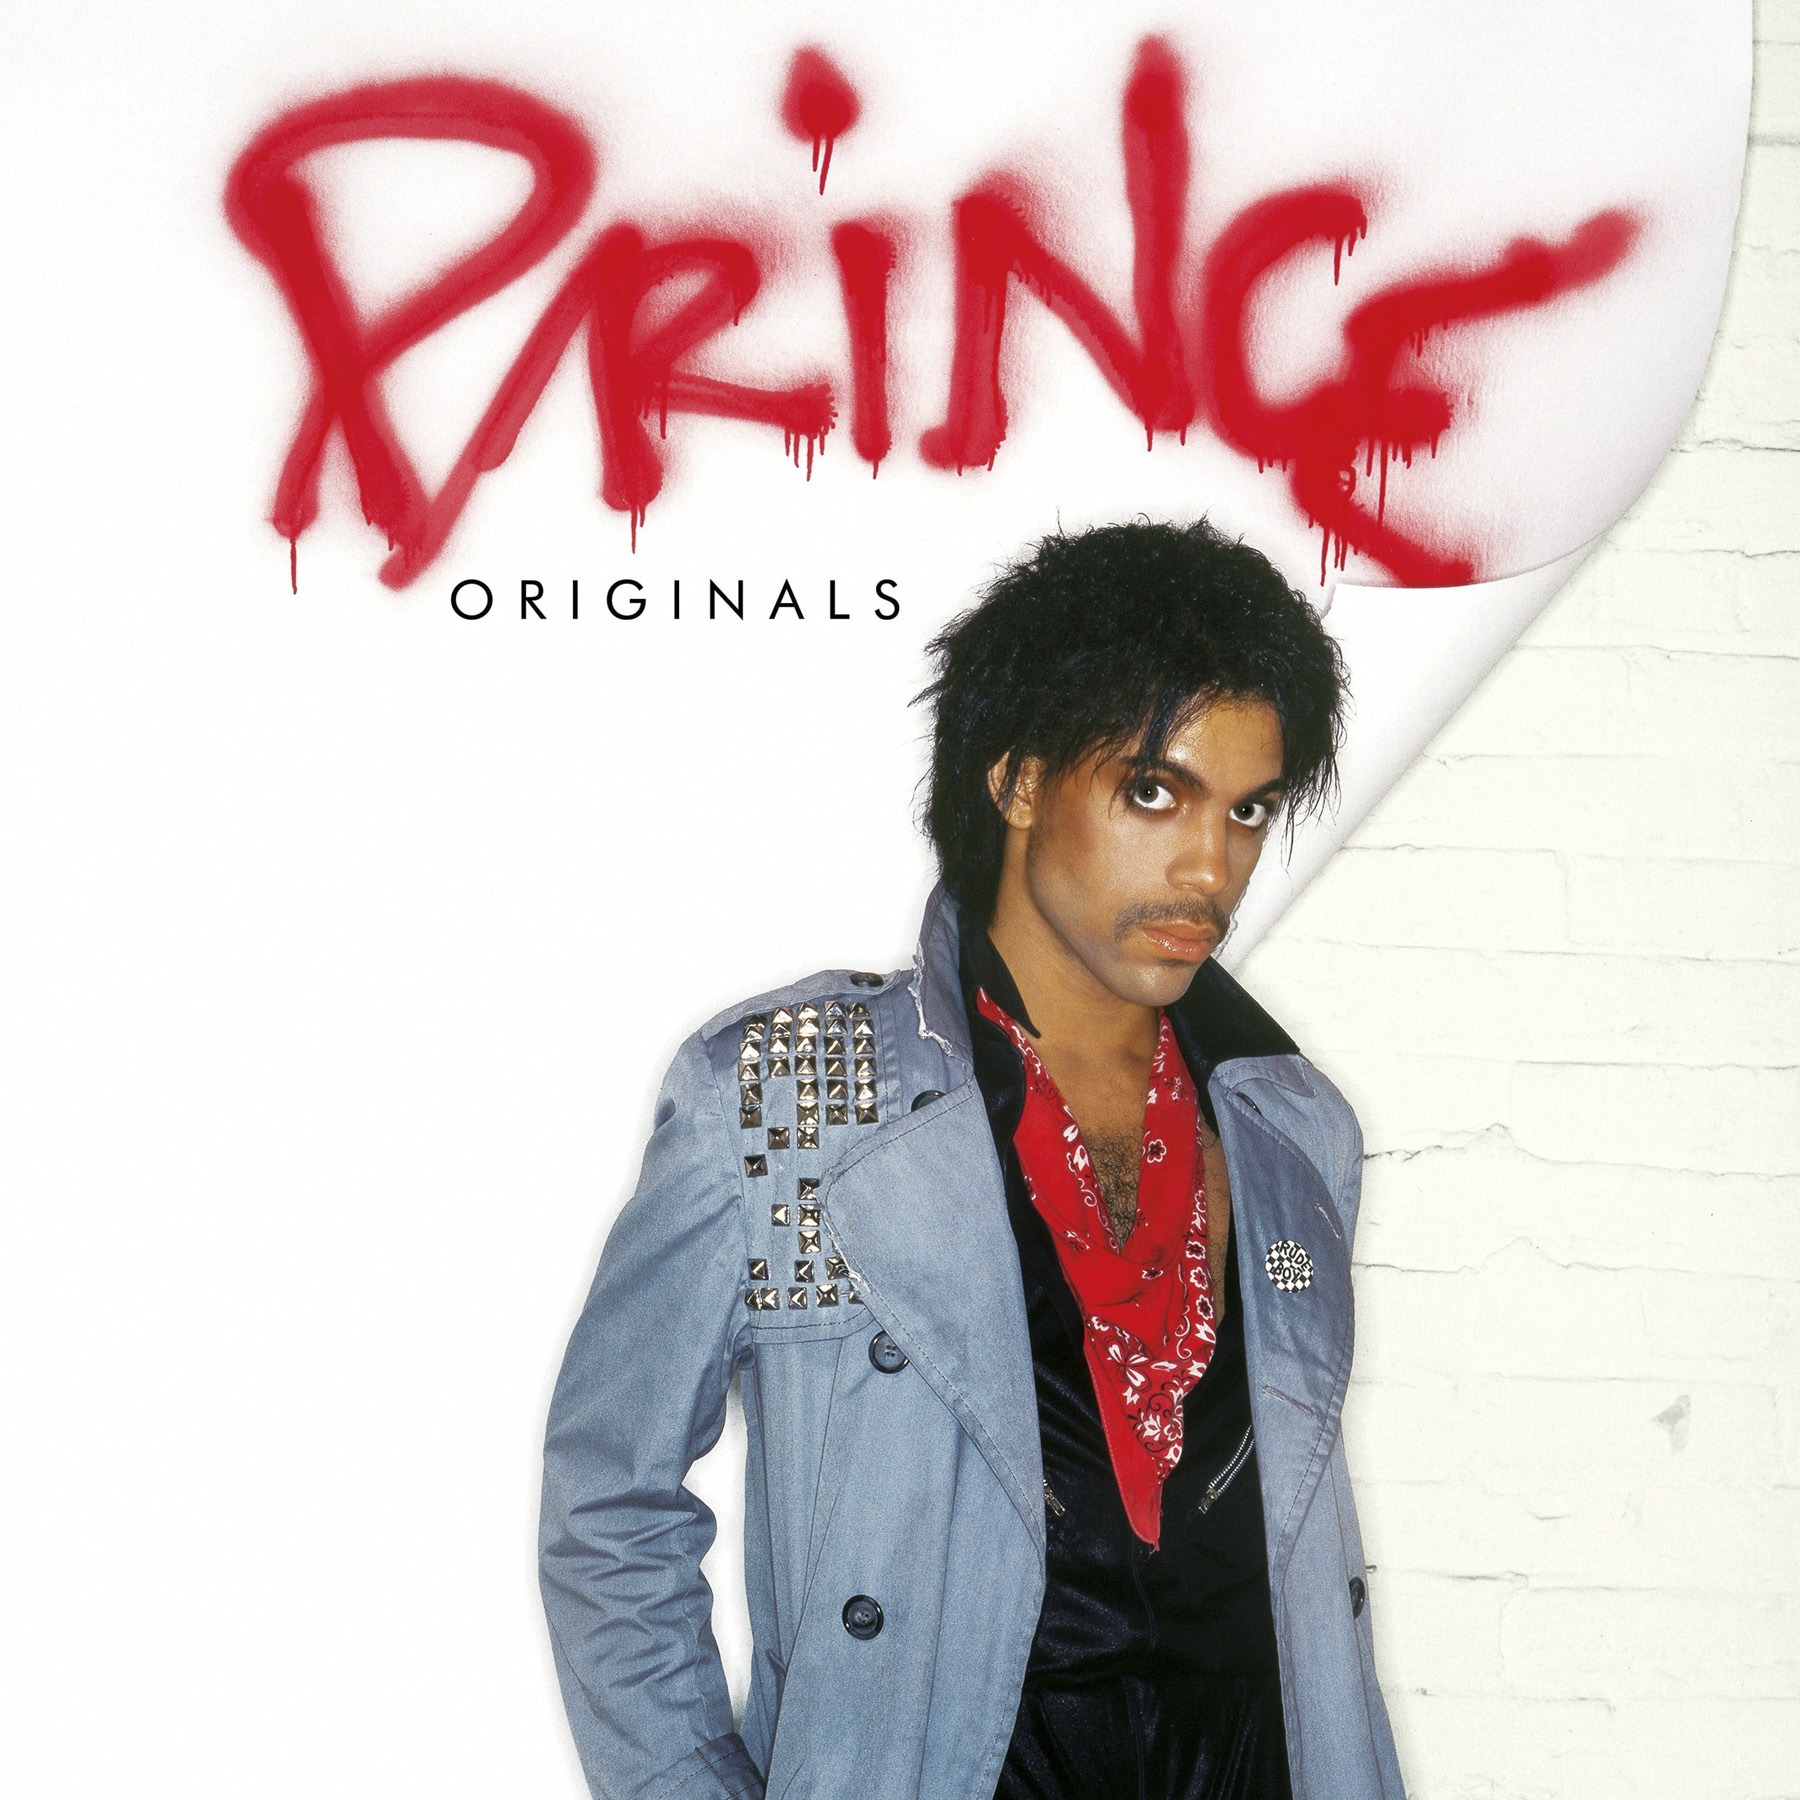 Originals Prince (June 21, 2019) Label: Warner Bros.